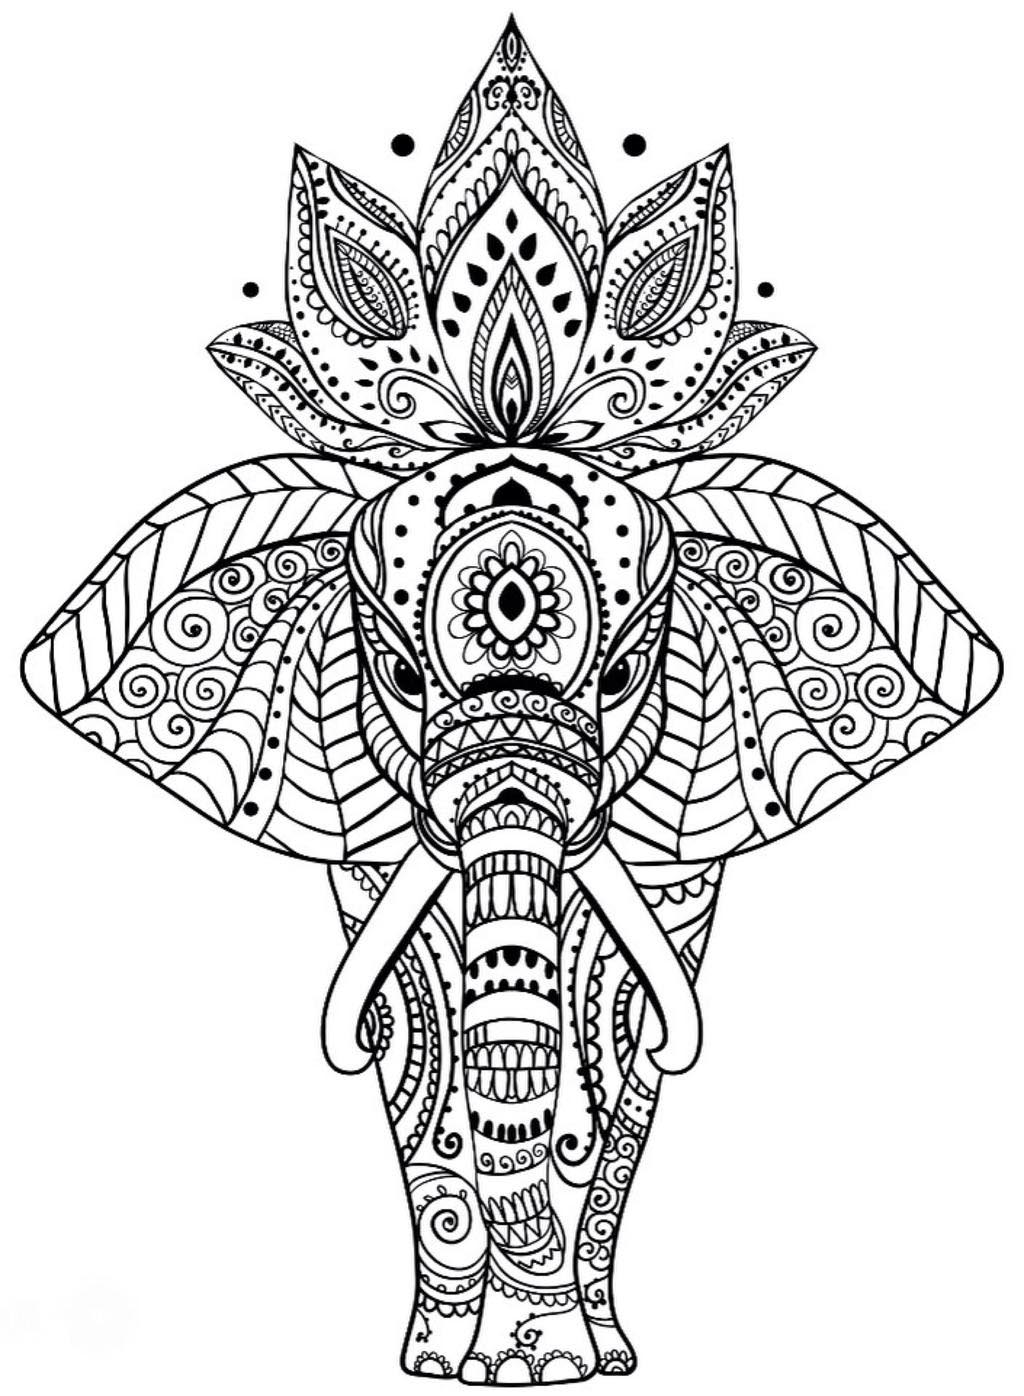 Free Animal Mandala Coloring Pages Sumptuous Design Linear printable